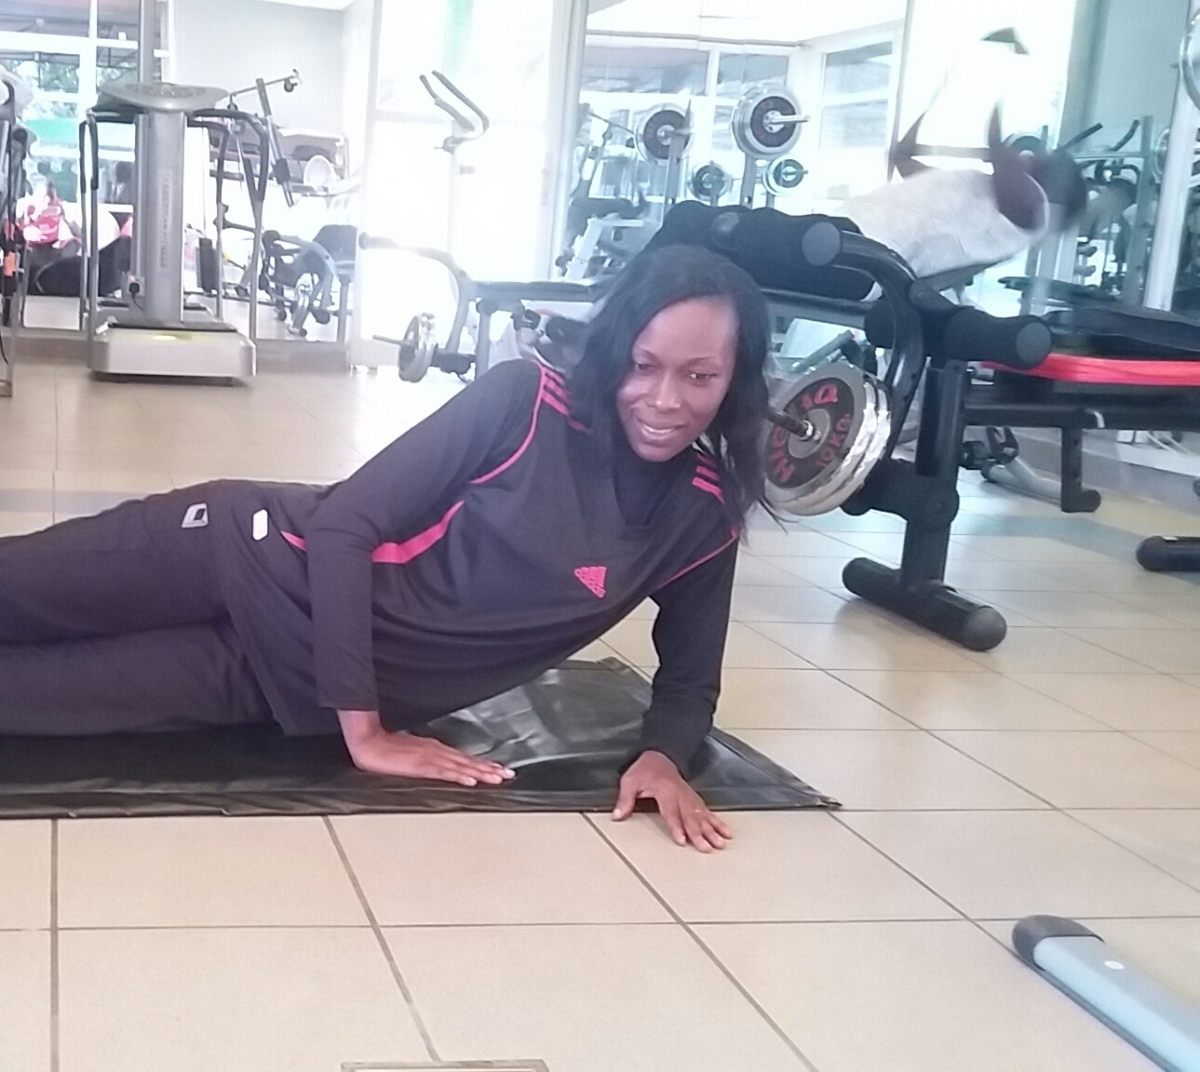 Stop missing out on core exercises: 7 core exercises you should do for a strong core